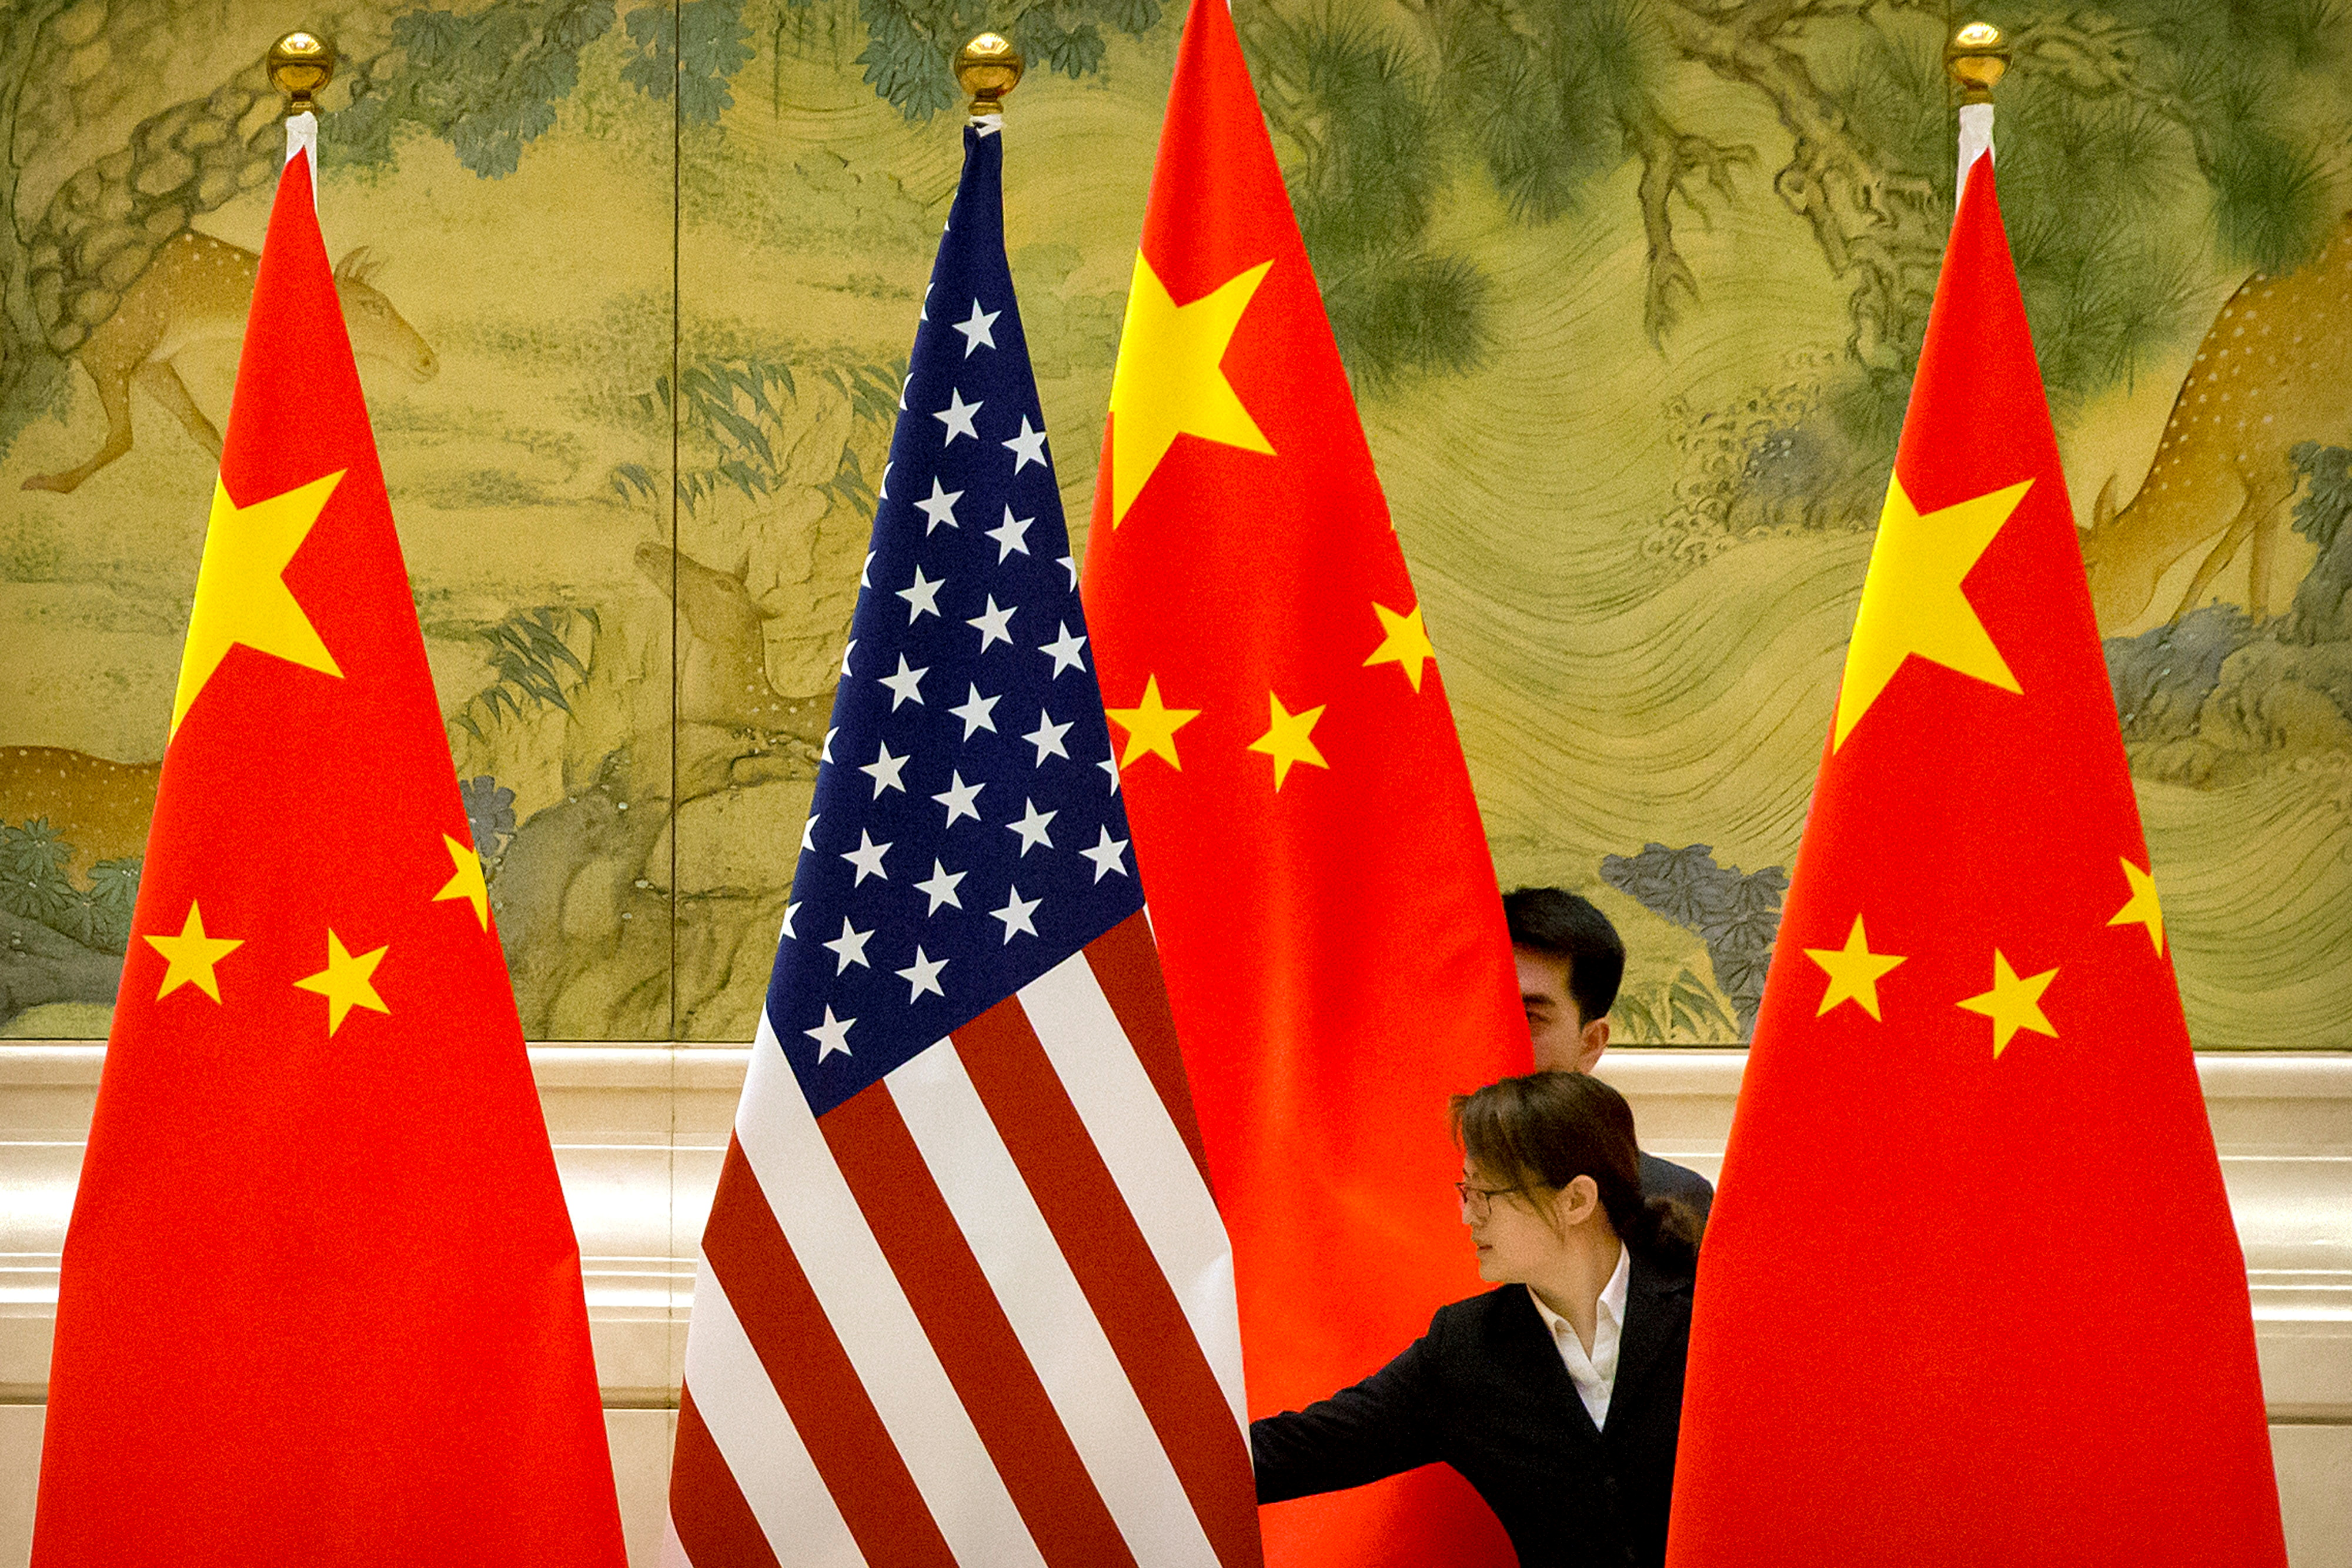 Chinese staffers adjust U.S. and Chinese flags before the opening session of Sino-U.S. trade negotiations in Beijing, Feb. 14, 2019. Mark Schiefelbein/Pool via REUTERS